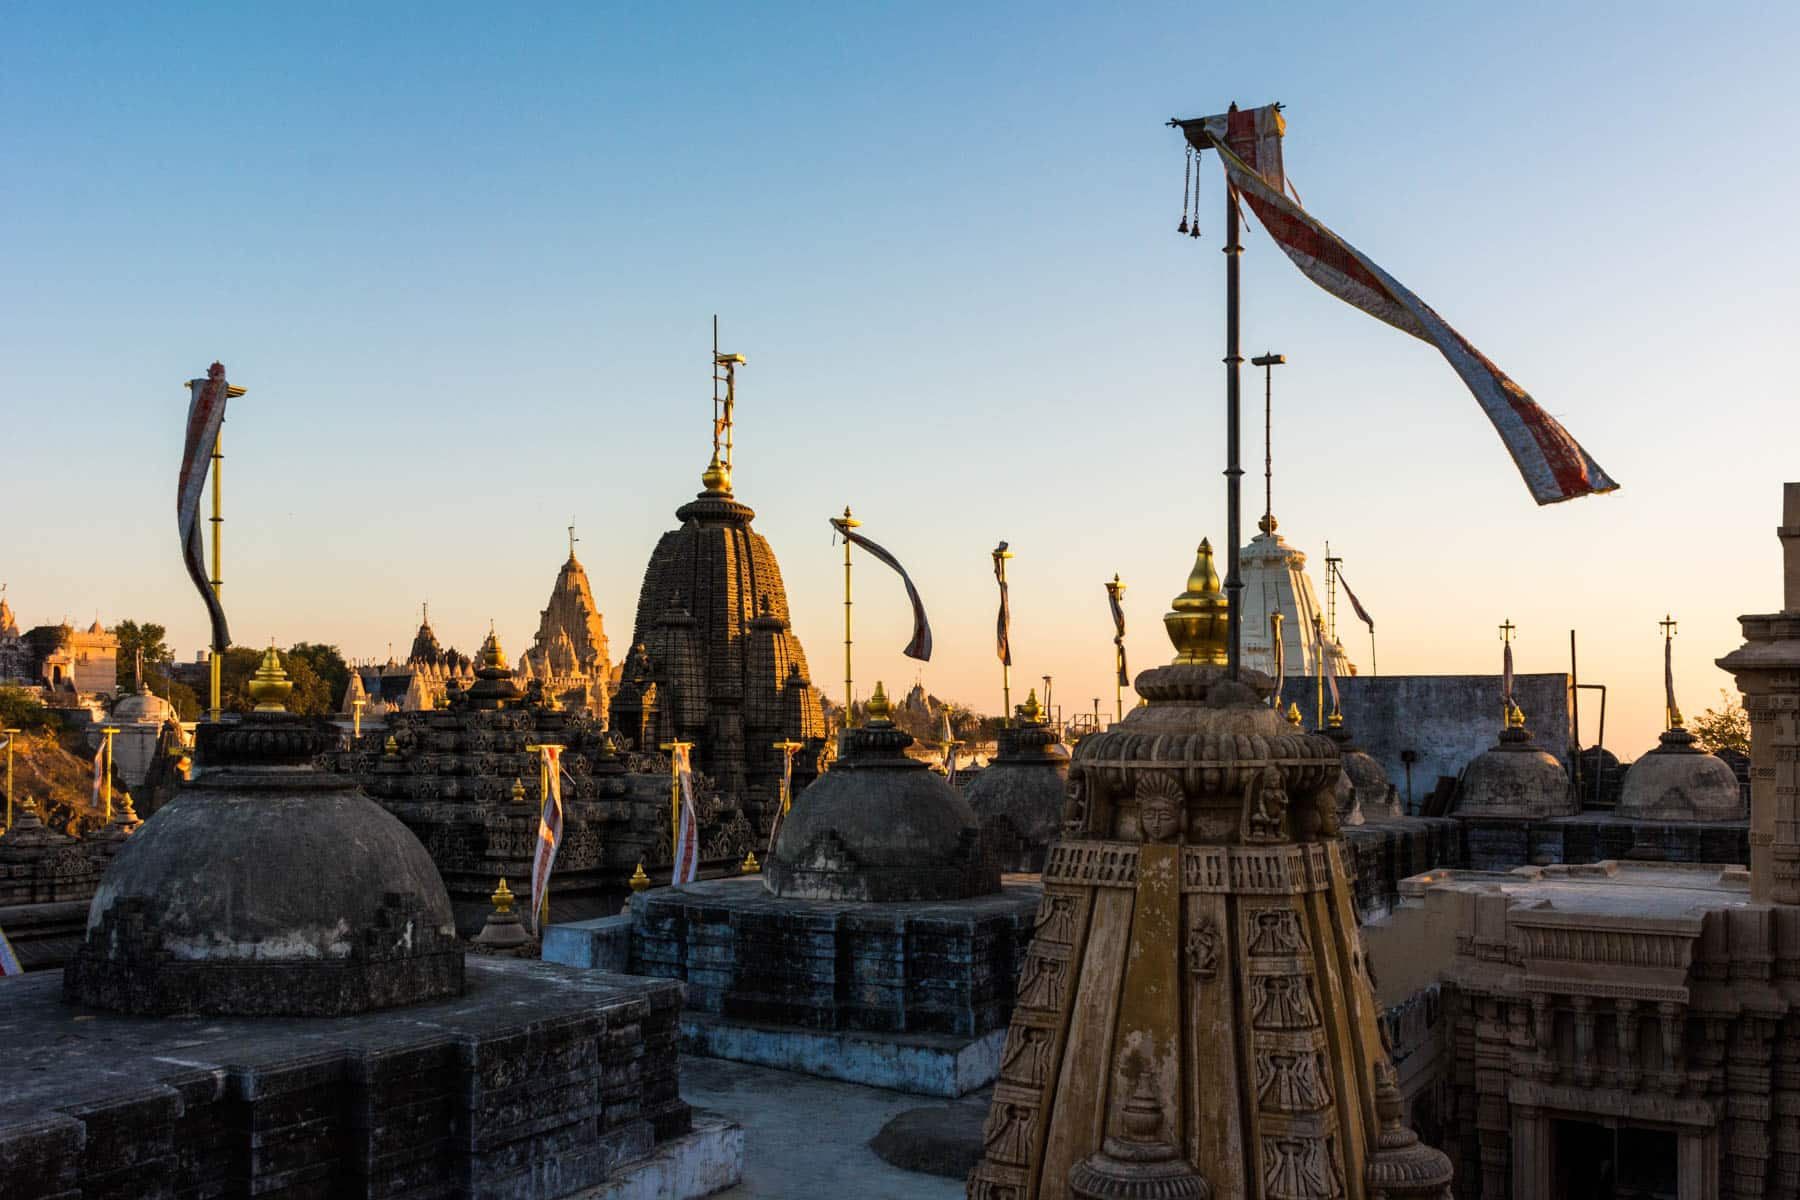 Ways of getting more off the beaten track while traveling - Jain temples at sunrise in Palitana, India - Lost With Purpose travel blog